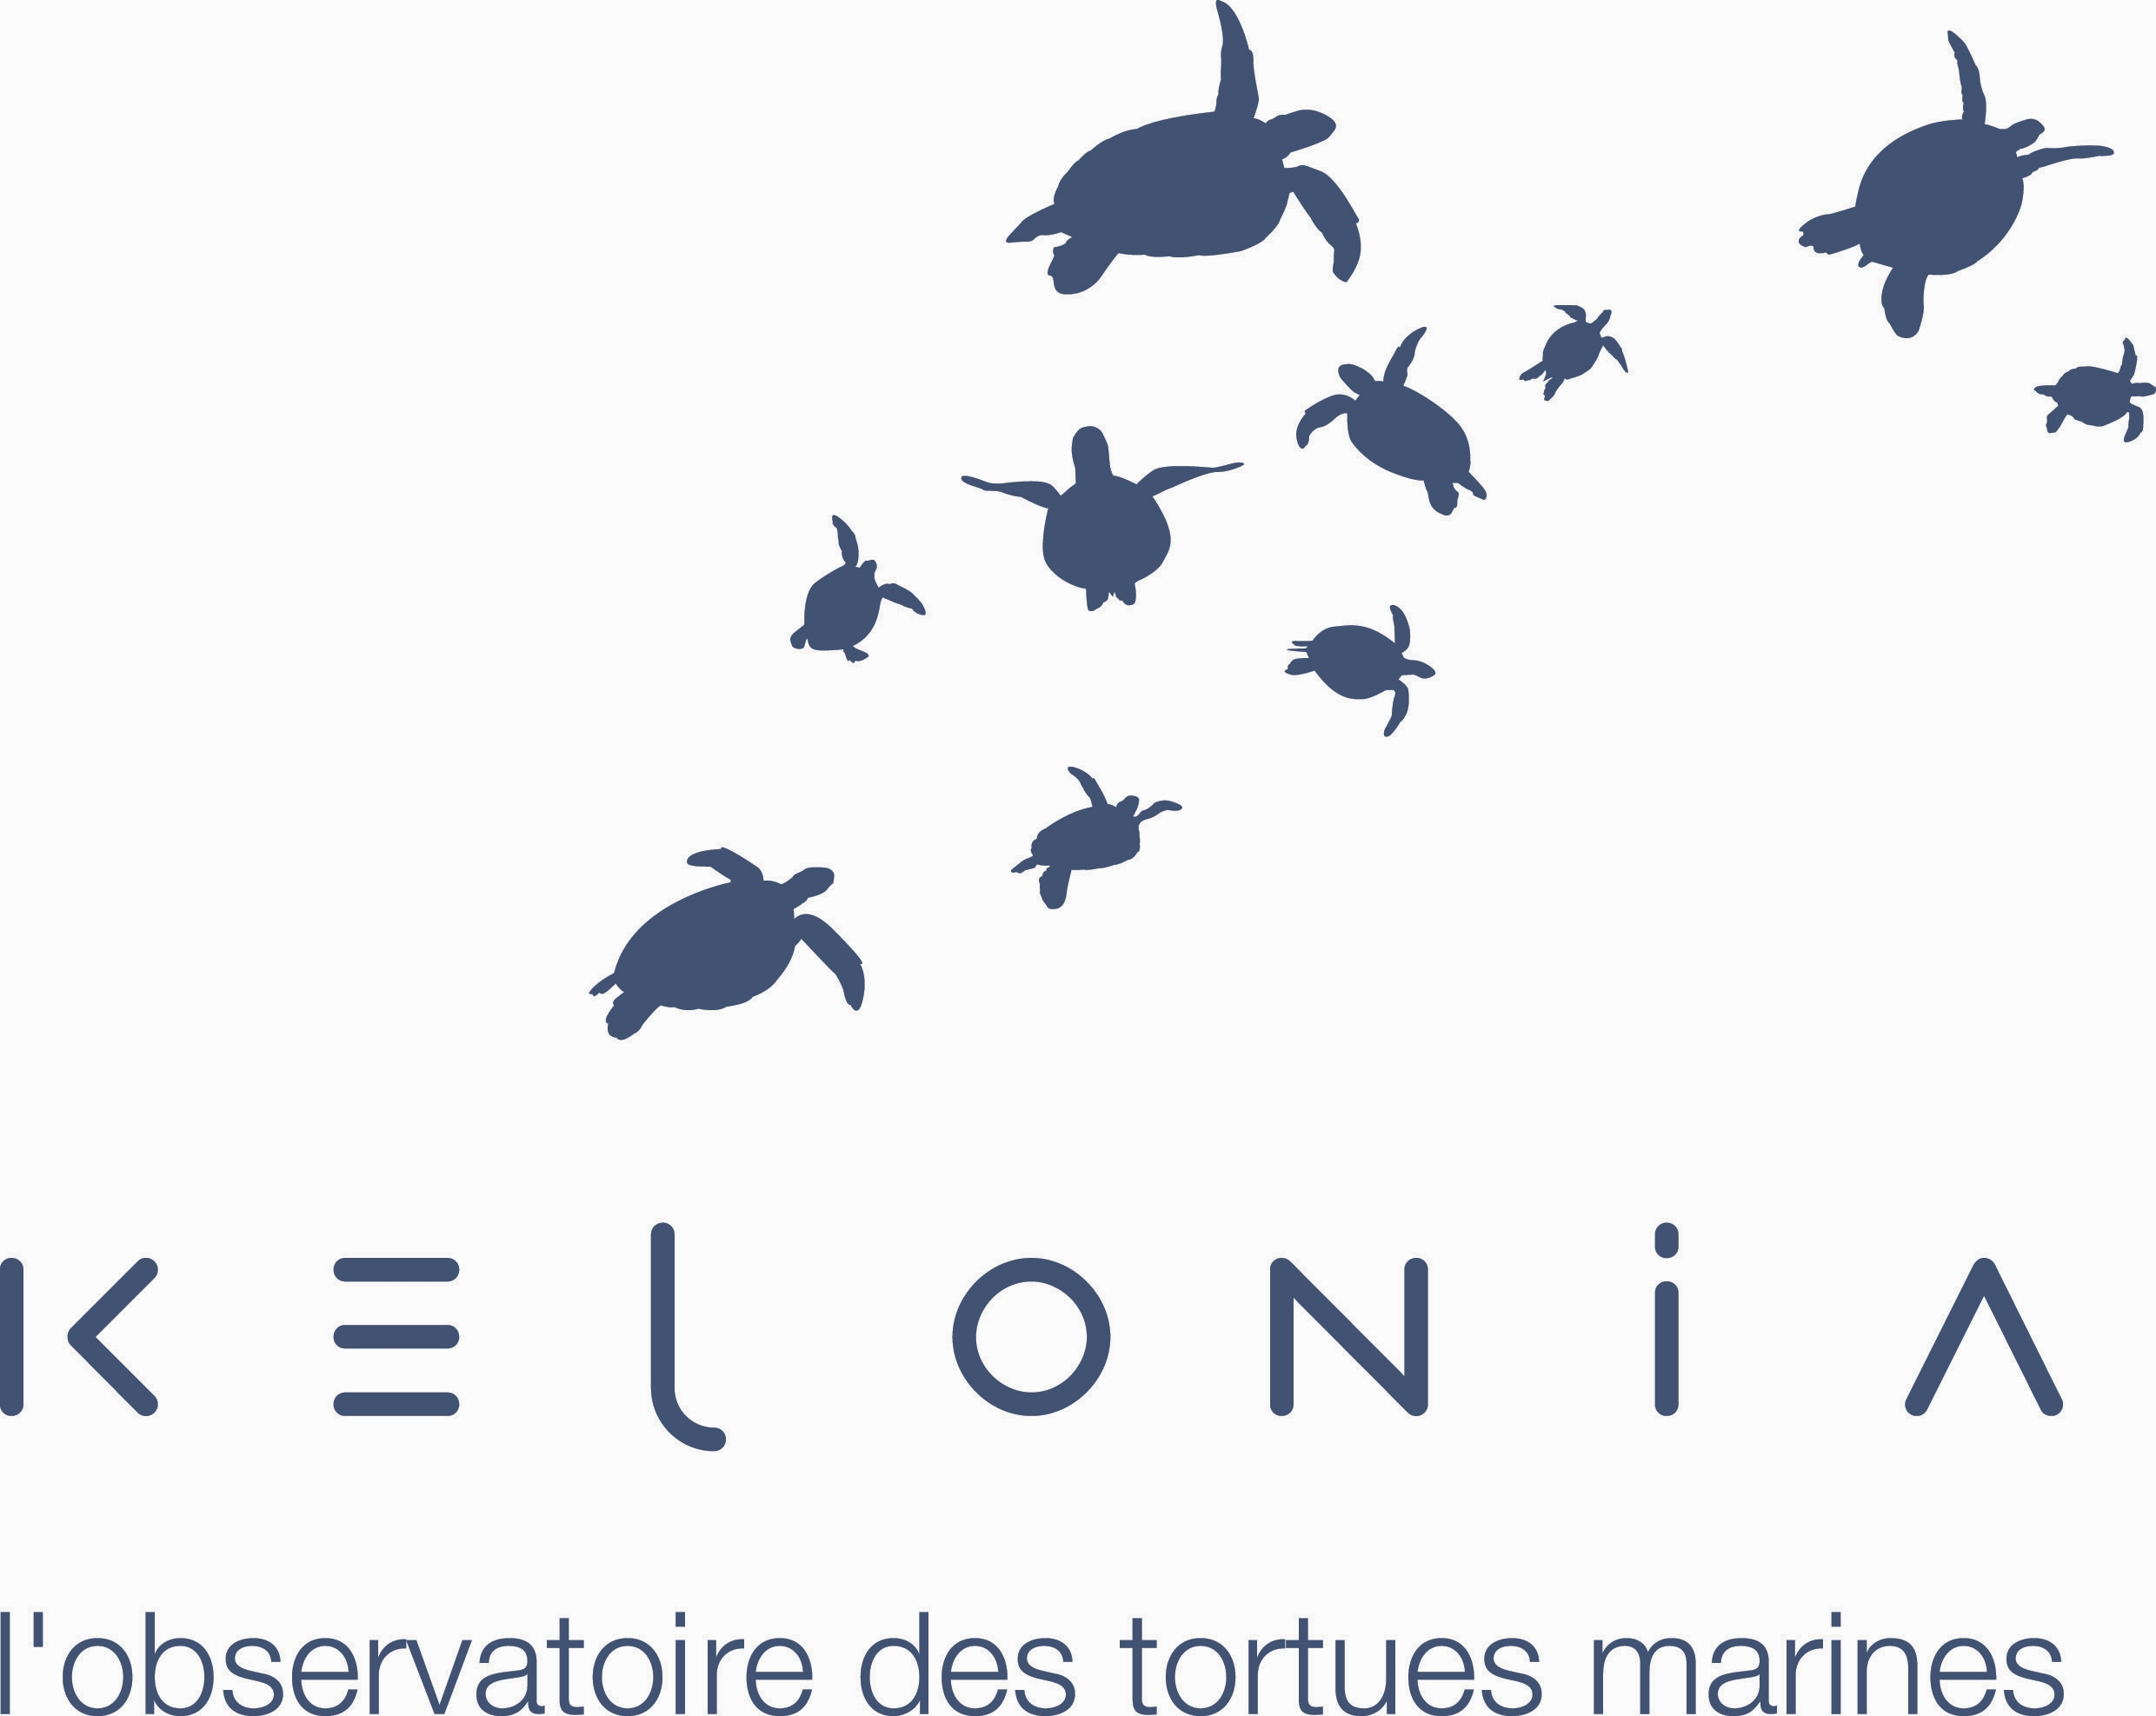 Programme de photo-identification des tortues marines à la Réunion